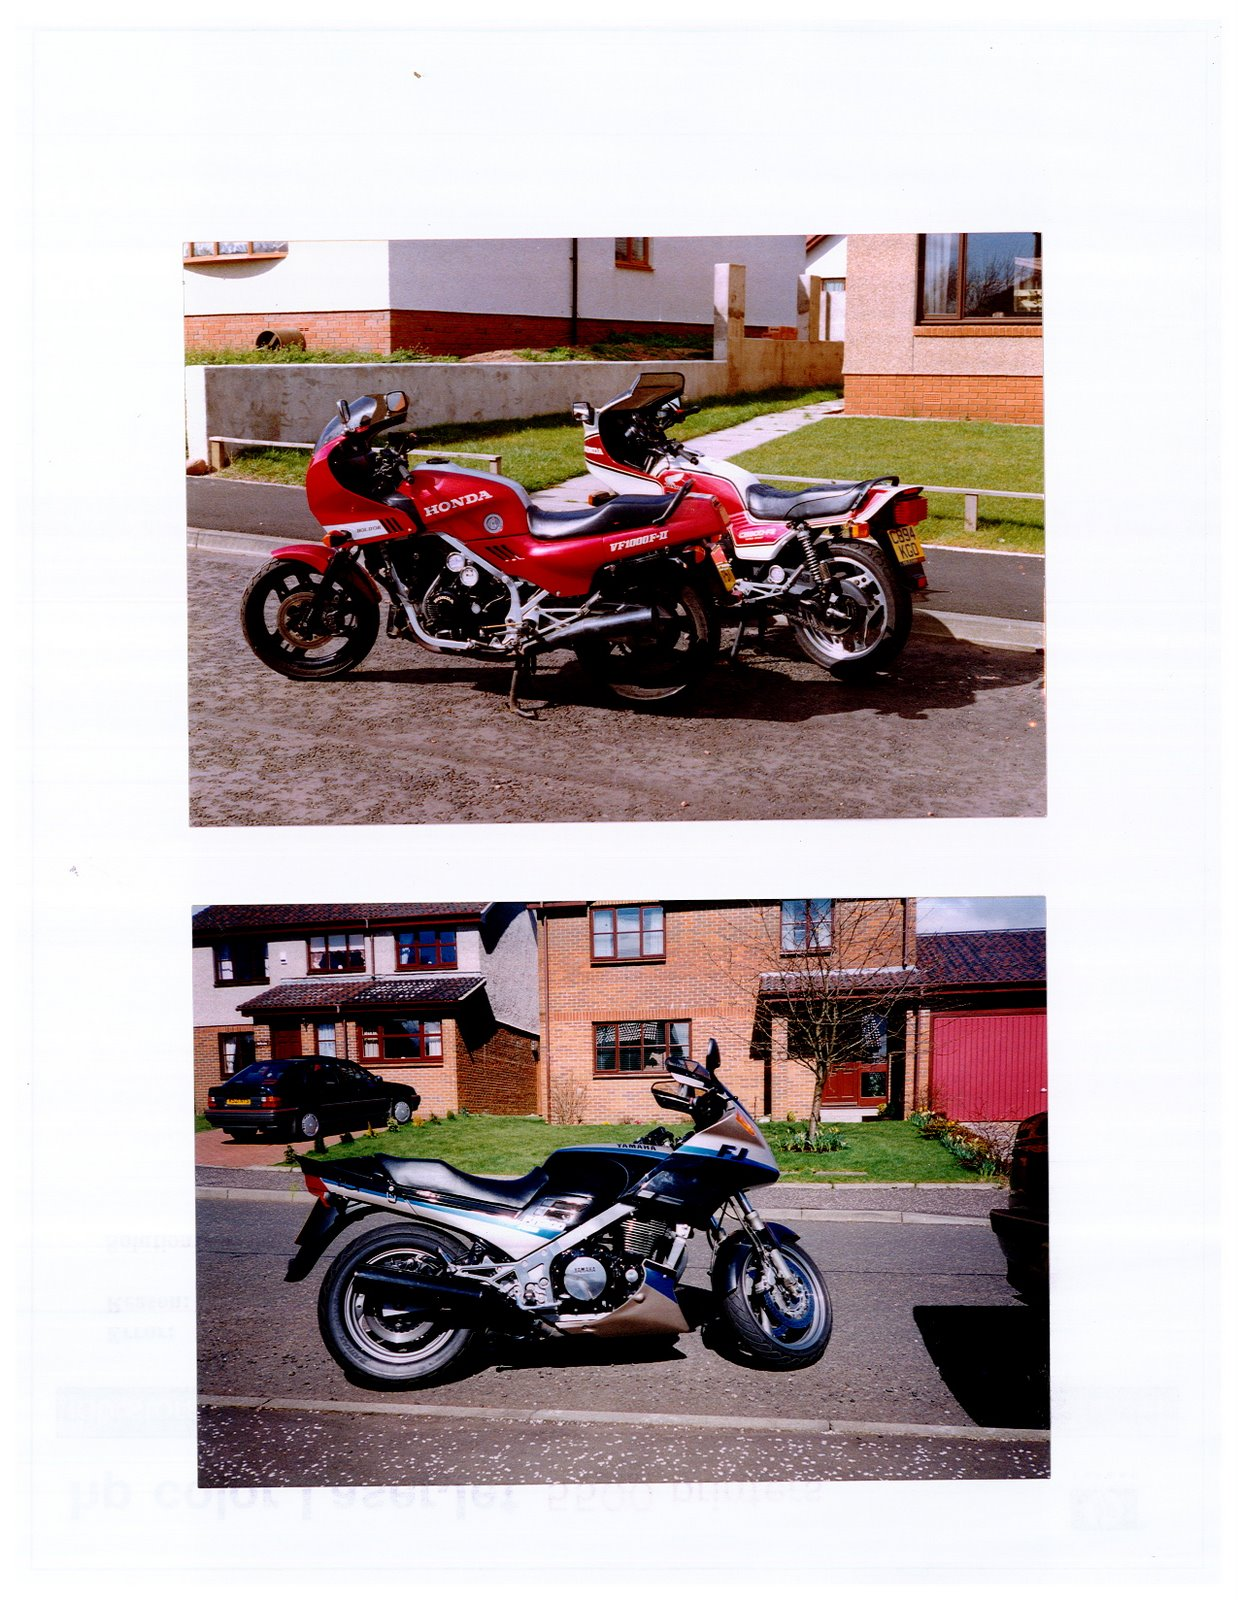 VF1000 Bol D'Or and FJ1200 A